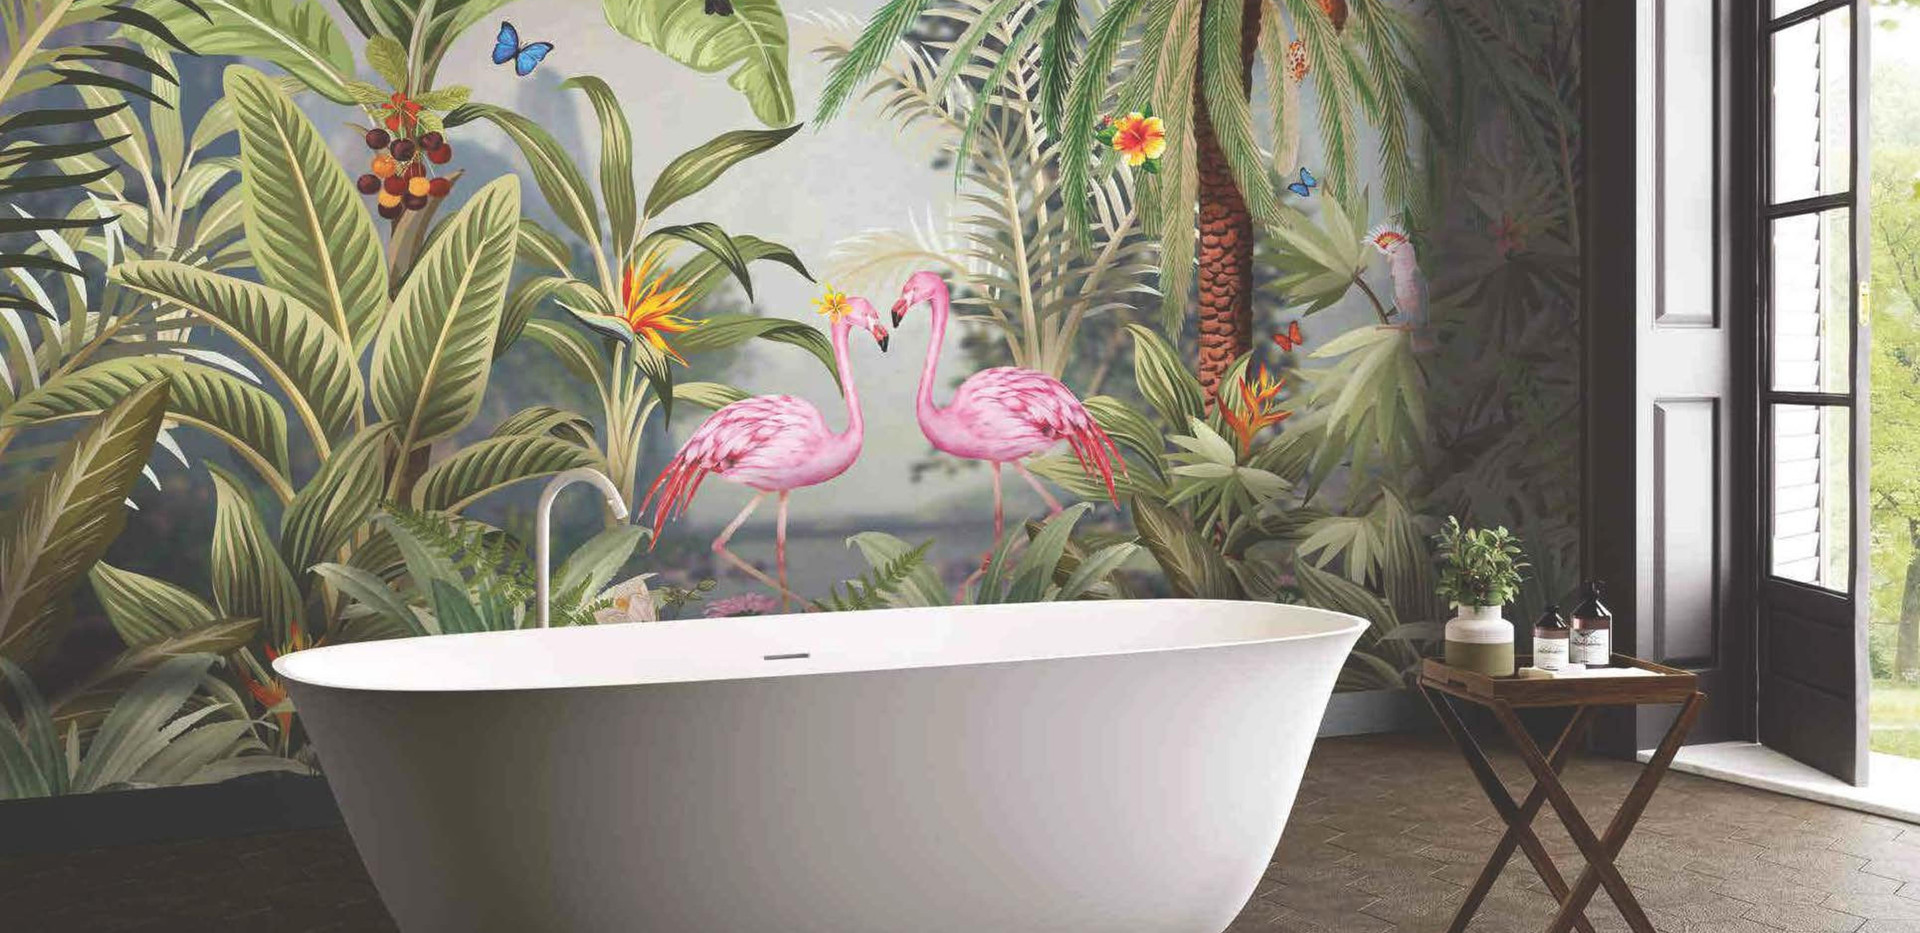 Amazon Mural Collection-page-079.jpg